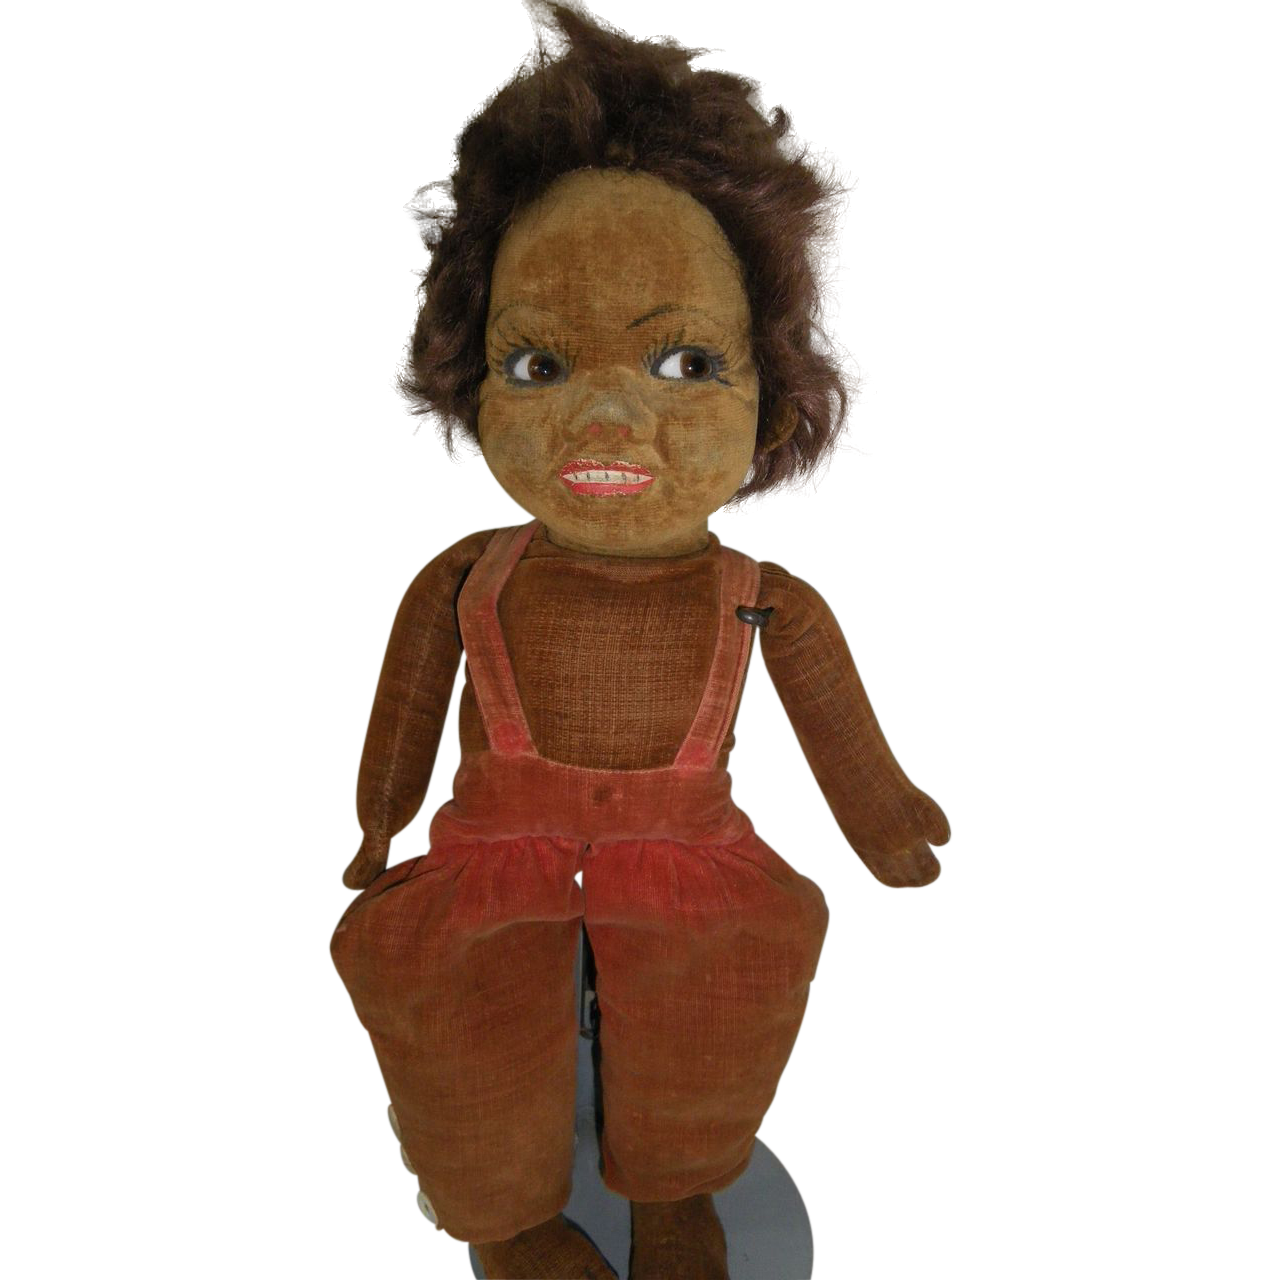 Norah Wellings Black Islander doll